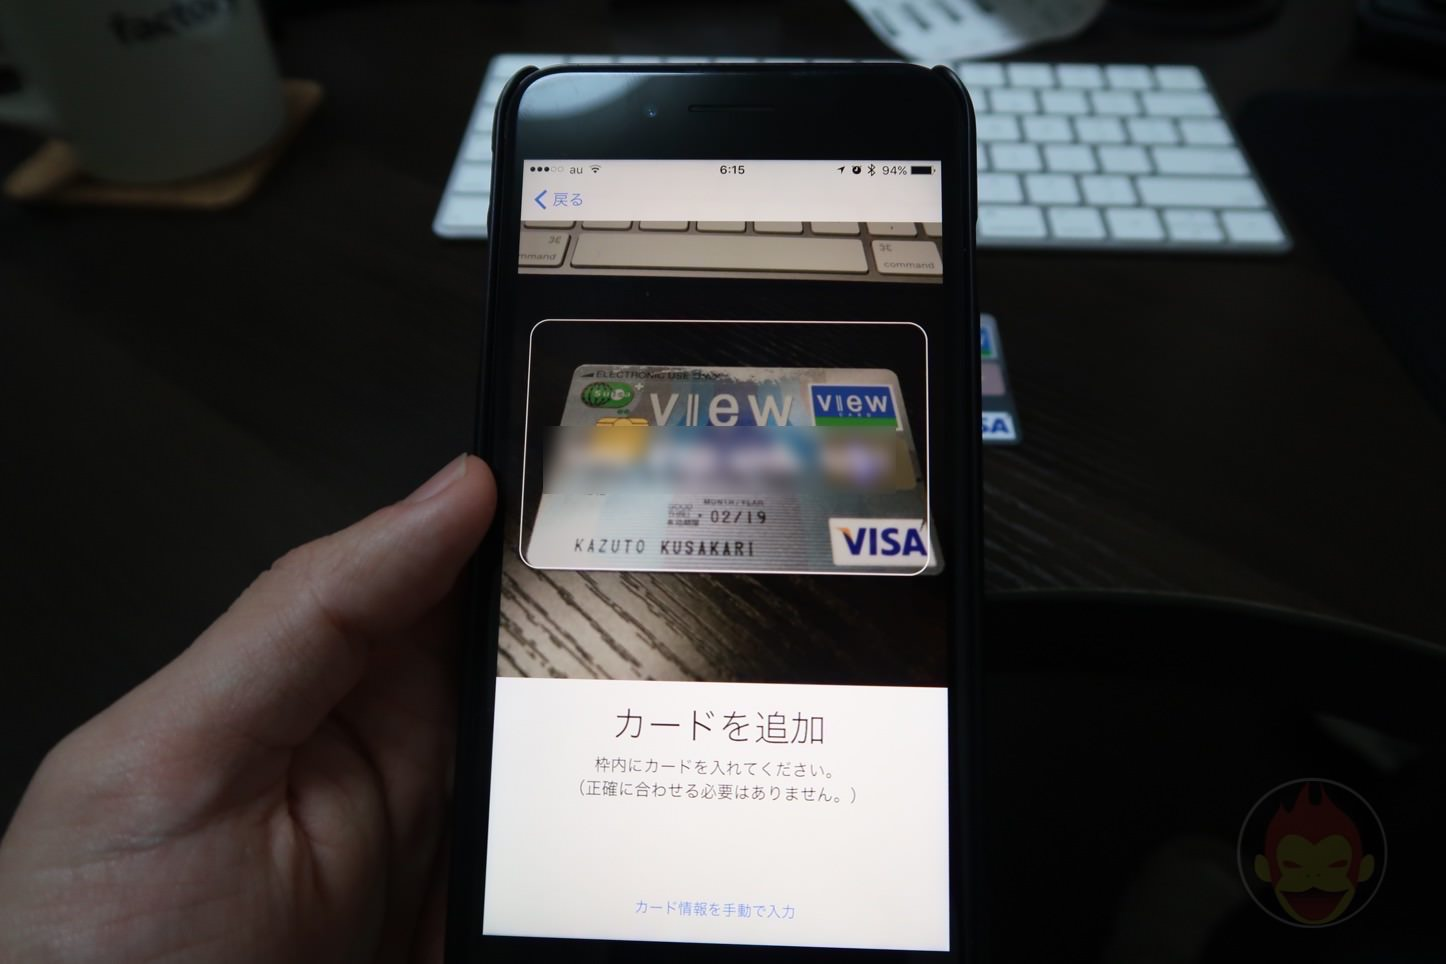 Adding CreditCard to Wallet App 01